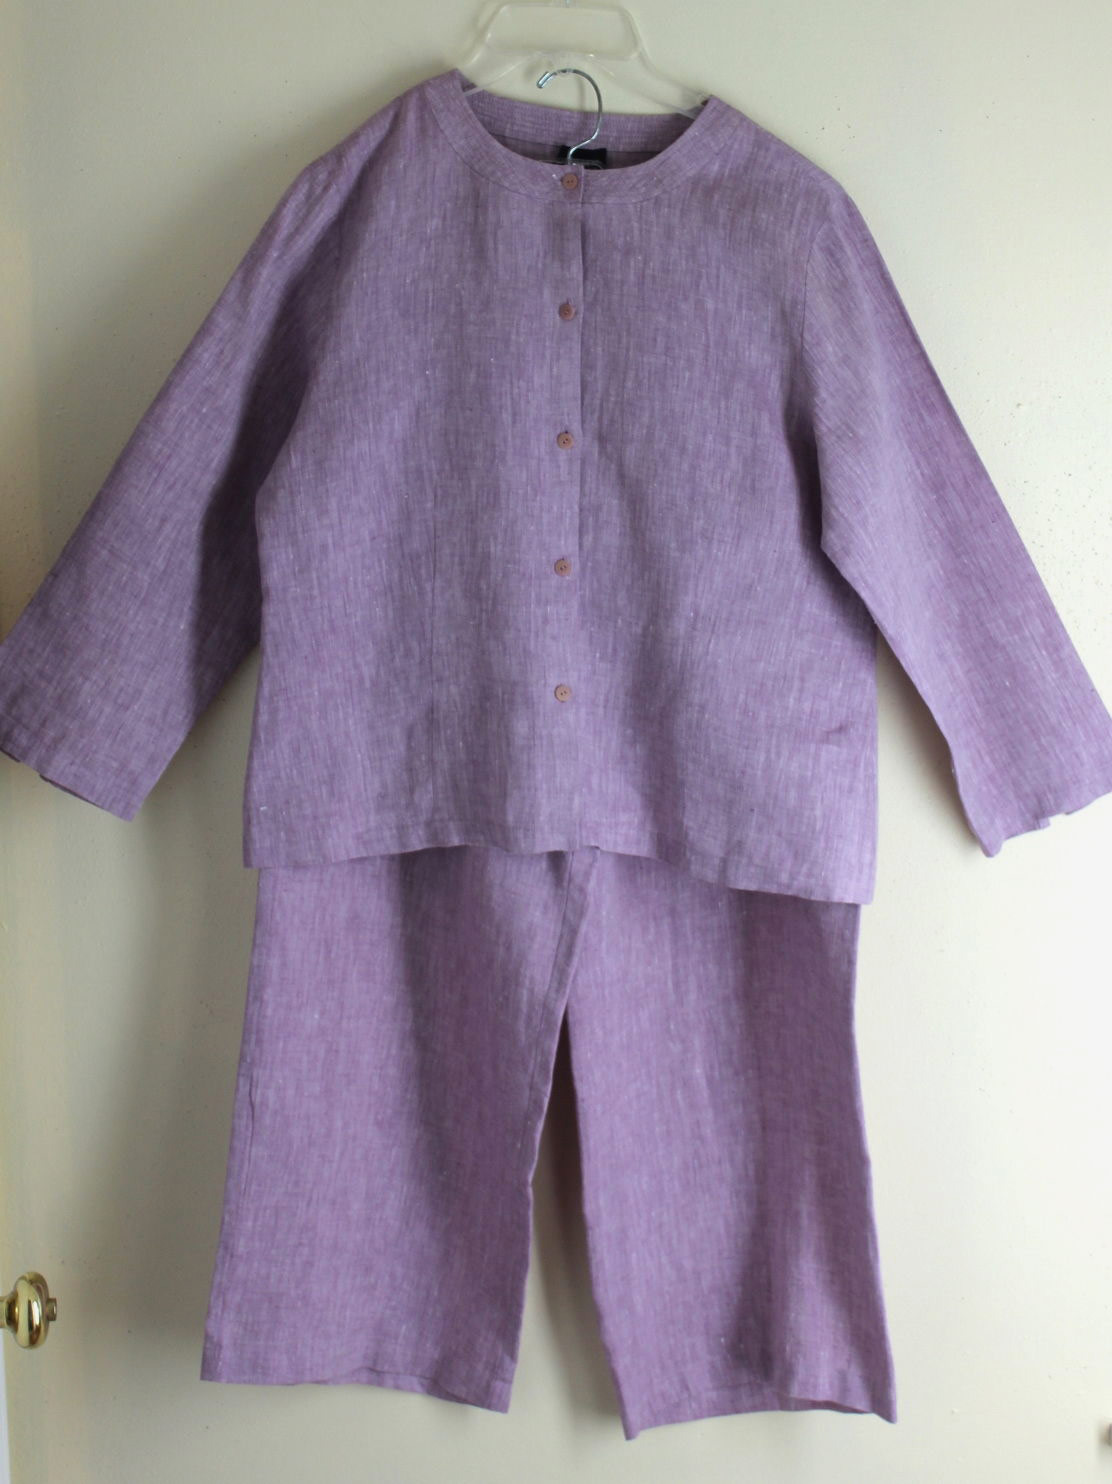 Eileen Fisher Lilac Linen Blouse Trouser Pants Outfit